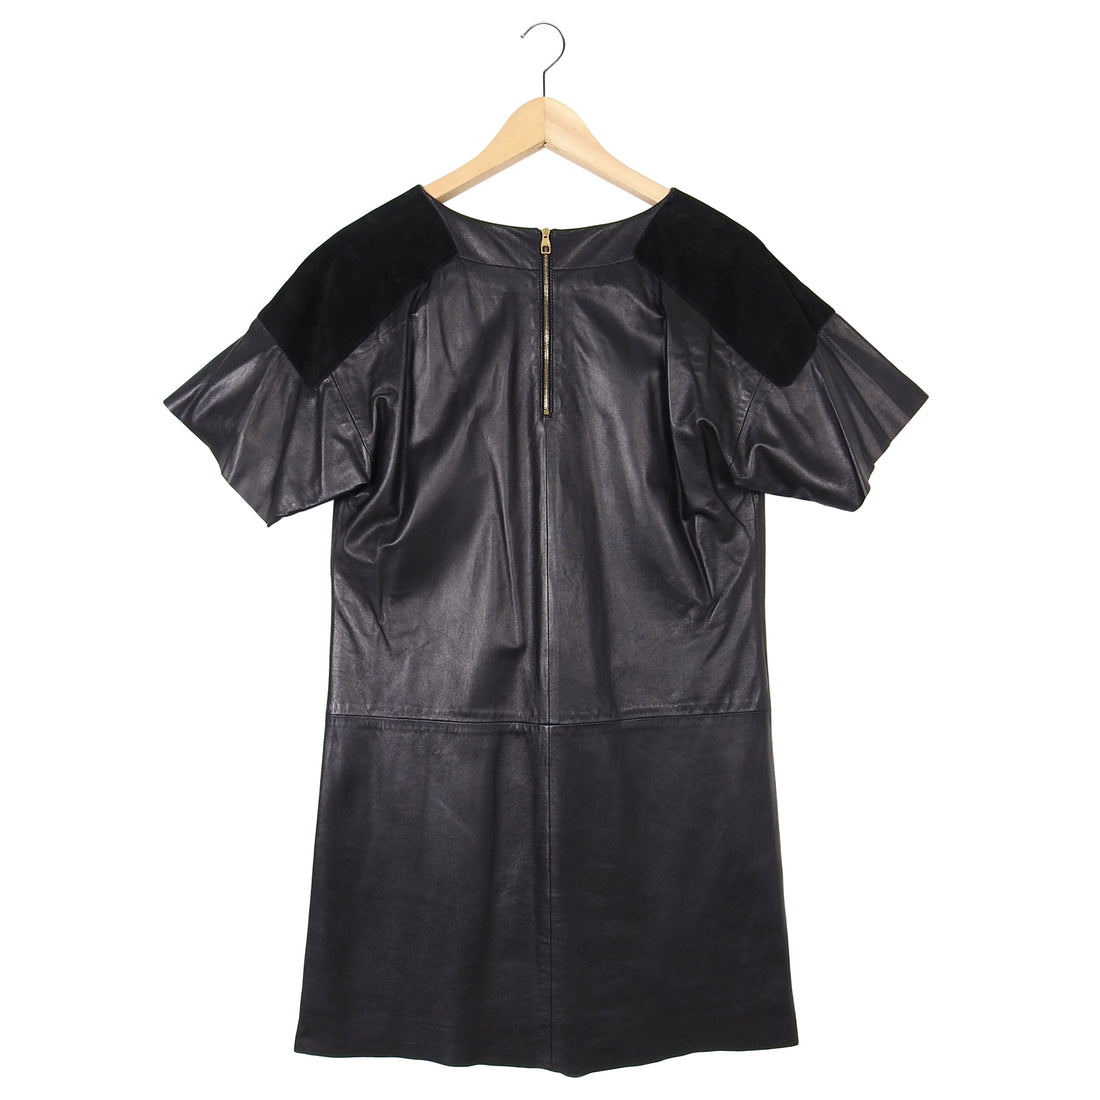 Louis Vuitton Short Sleeve Leather and Suede Mini Dress – FR34 / USA 2 / XS